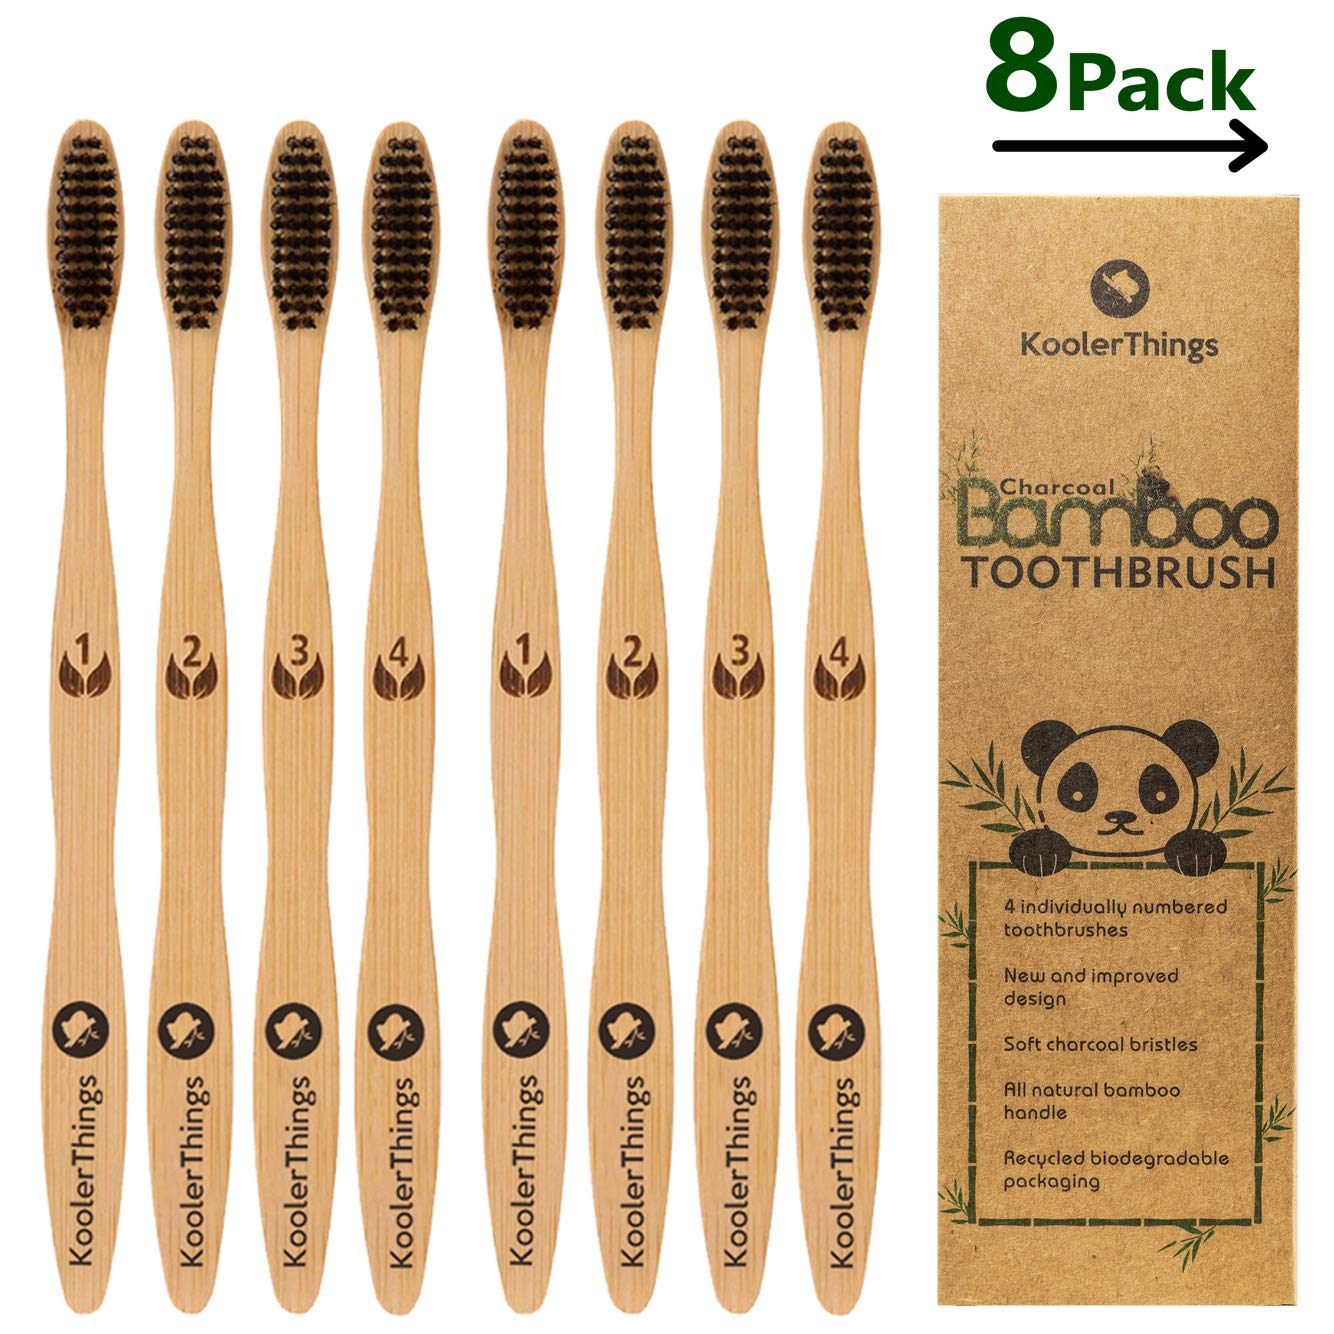 Kooler Things bamboo toothbrush from Amazon